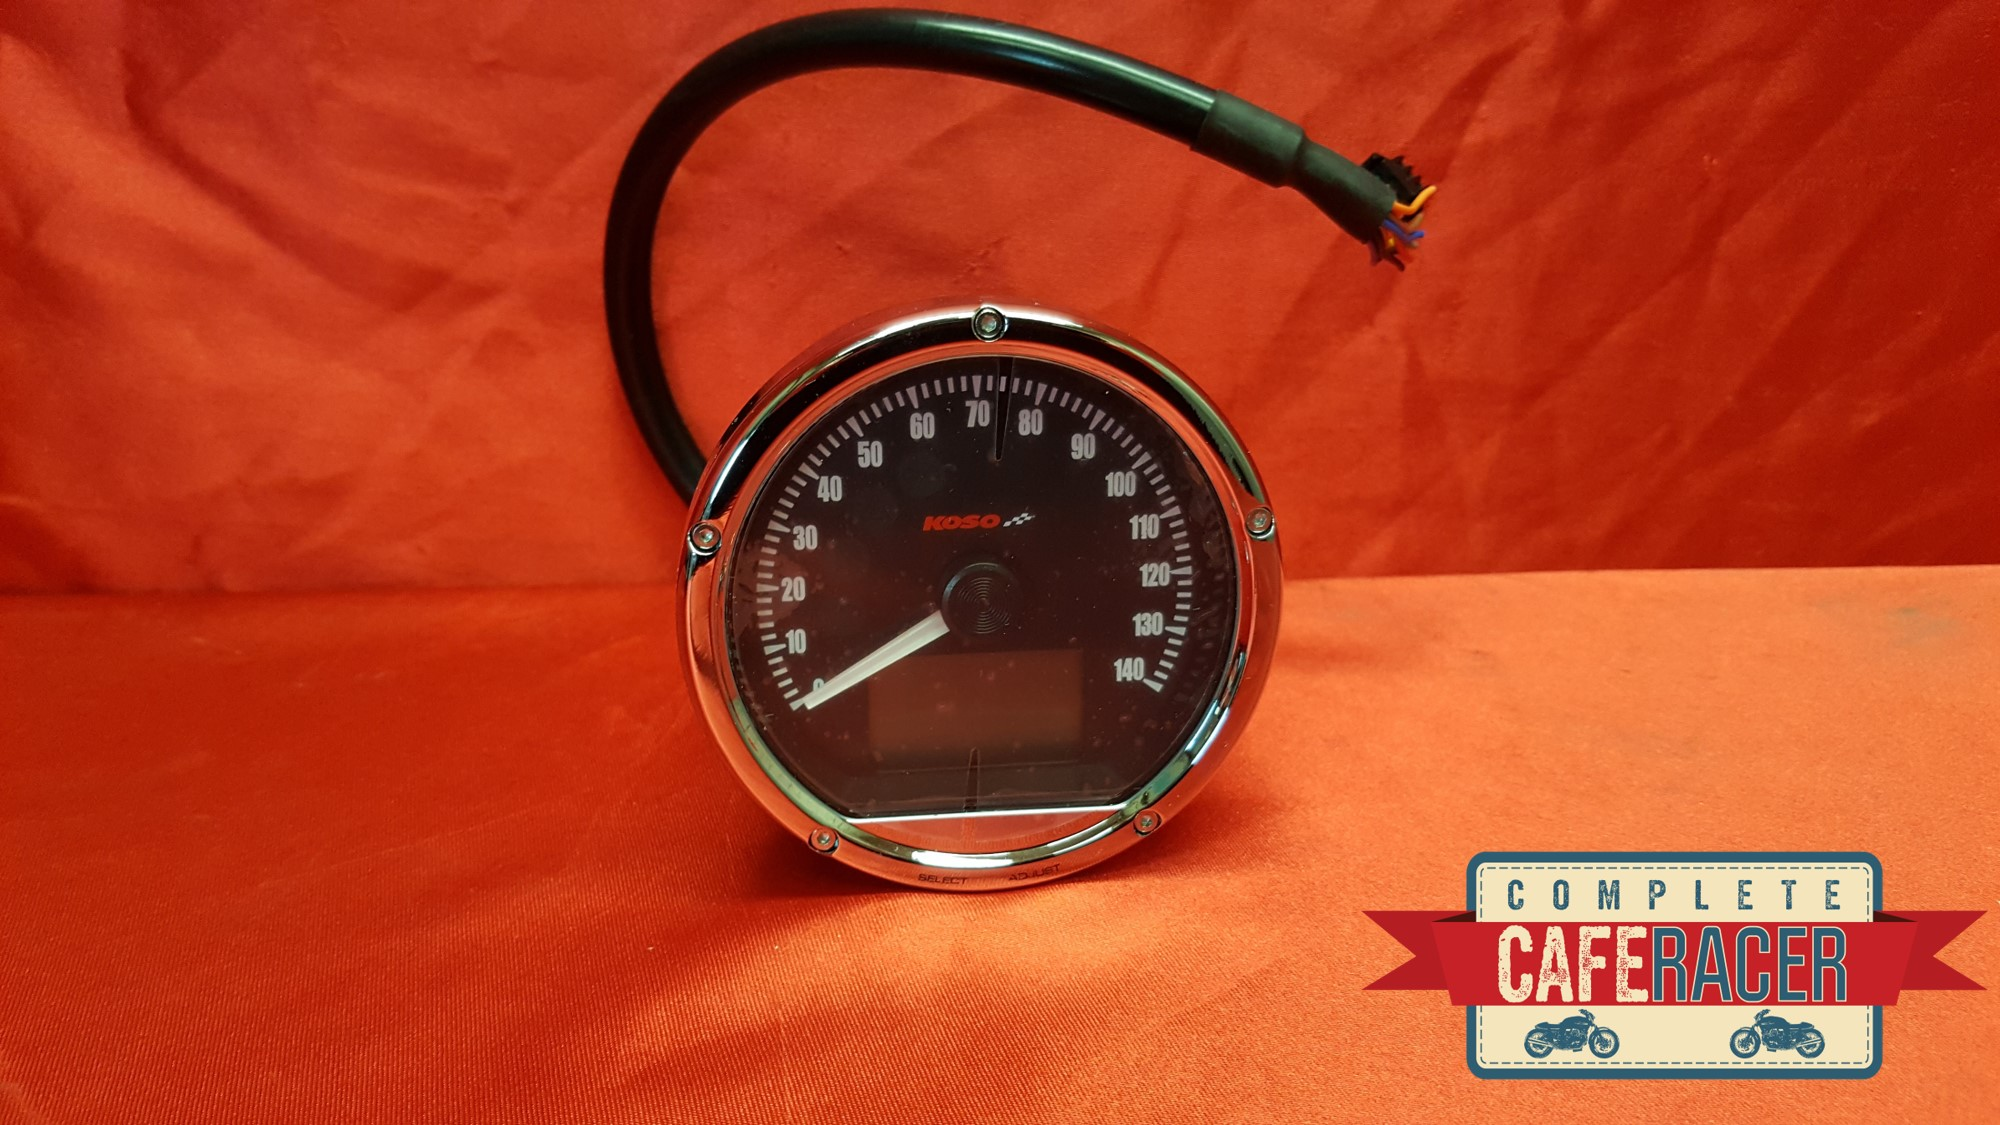 CAFE RACER KOSO CRB01s SPEEDOMETER 140MPH/225KPH